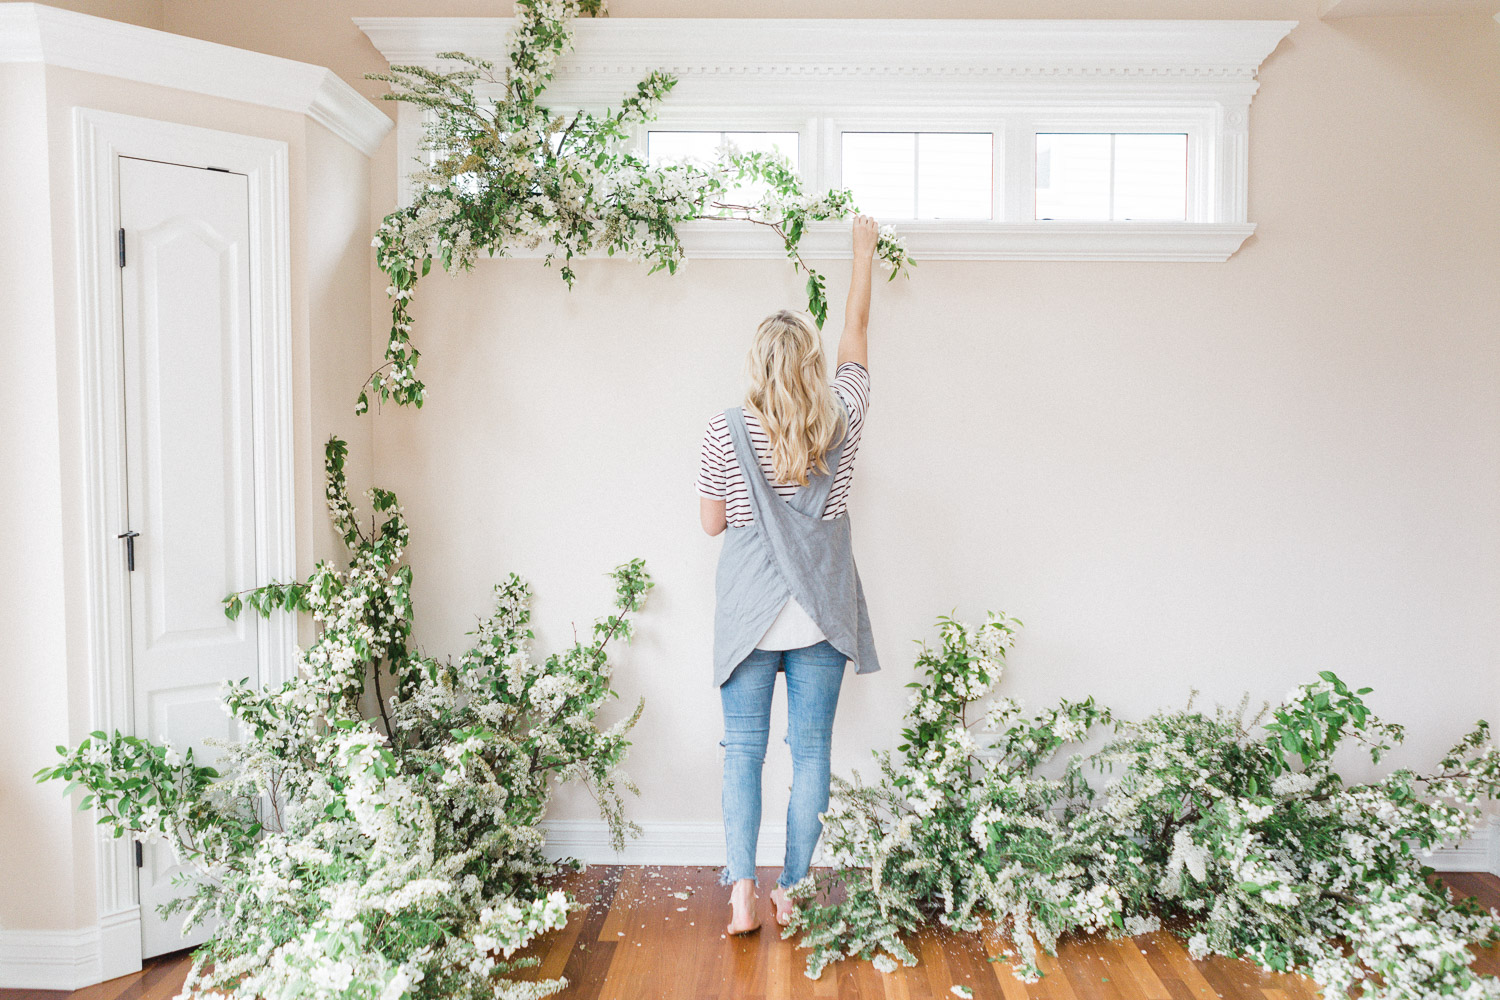 Image: I love 1:1 styled shoot because they give me creative freedom and a chance to create unique i...